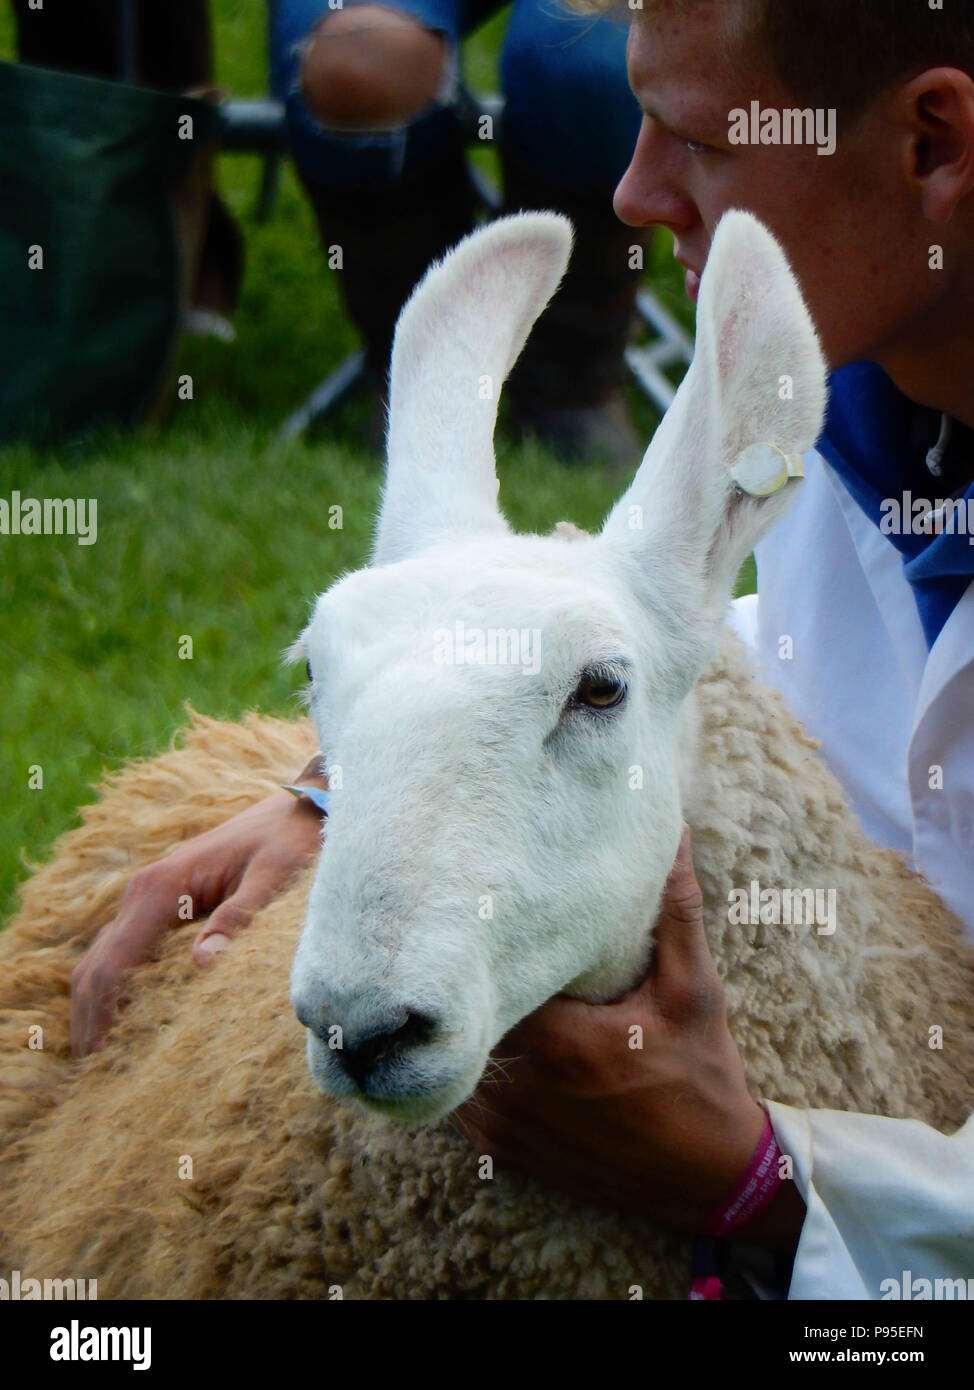 Close up of a long eared sheep in the judging ring on the showground at the Royal Welsh Show. The show is one of Europe's biggest agricultural events. - Stock Image